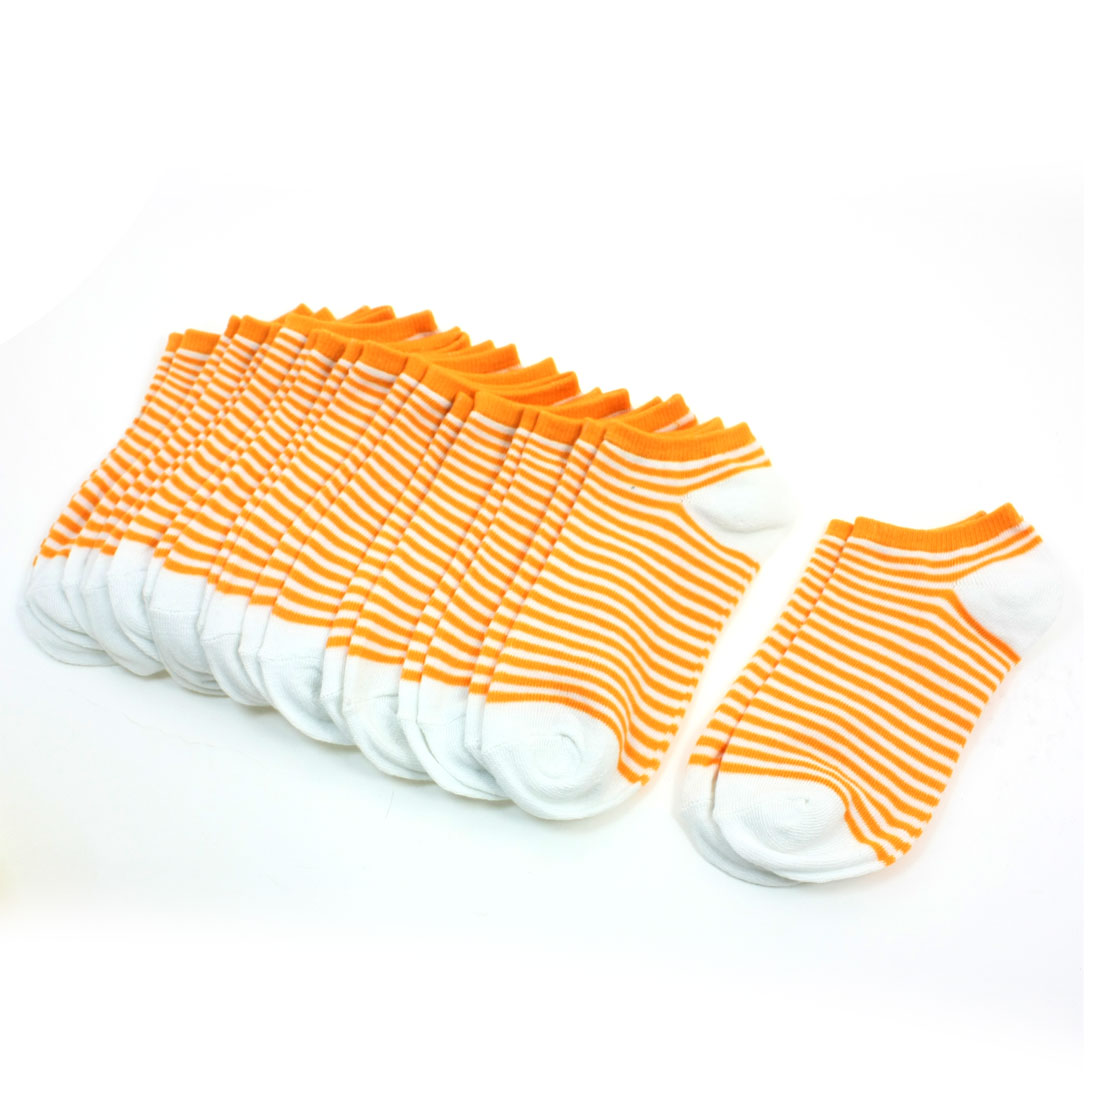 10 Pair Leisure Girl Stripe Decor Stretch Ankle Low Cut Socks Orange White